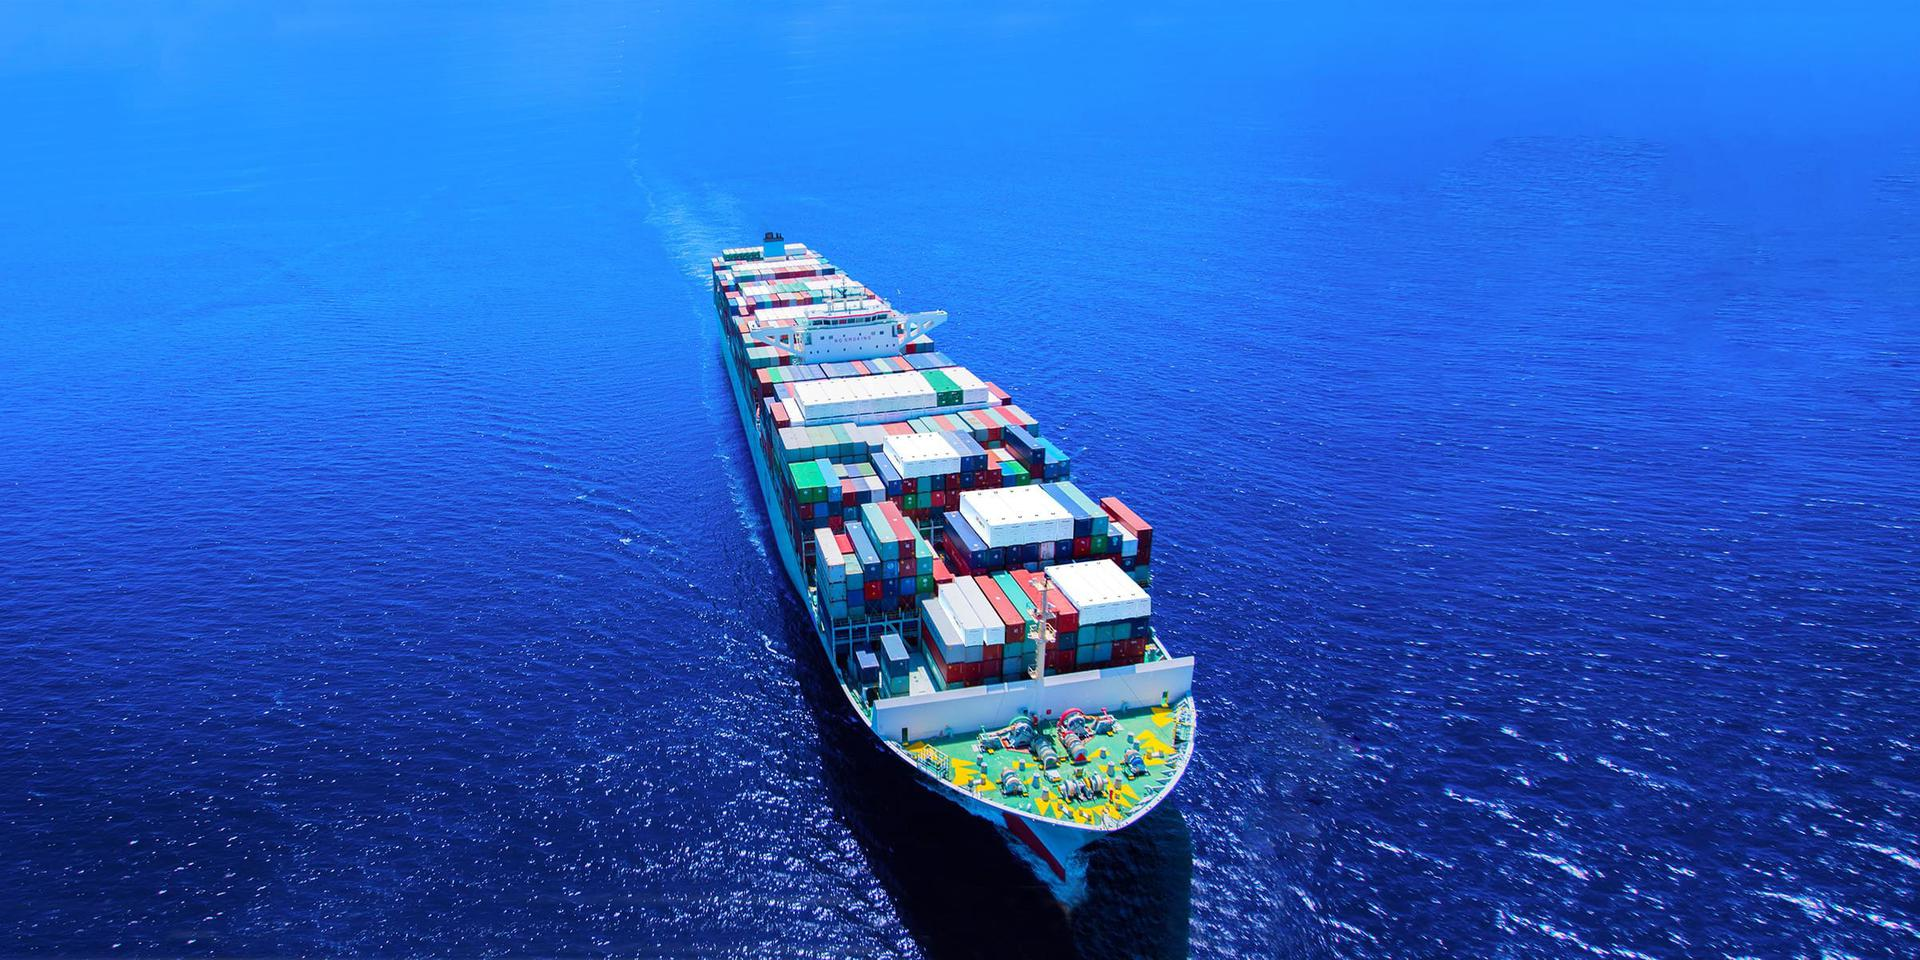 XPO ocean and containers